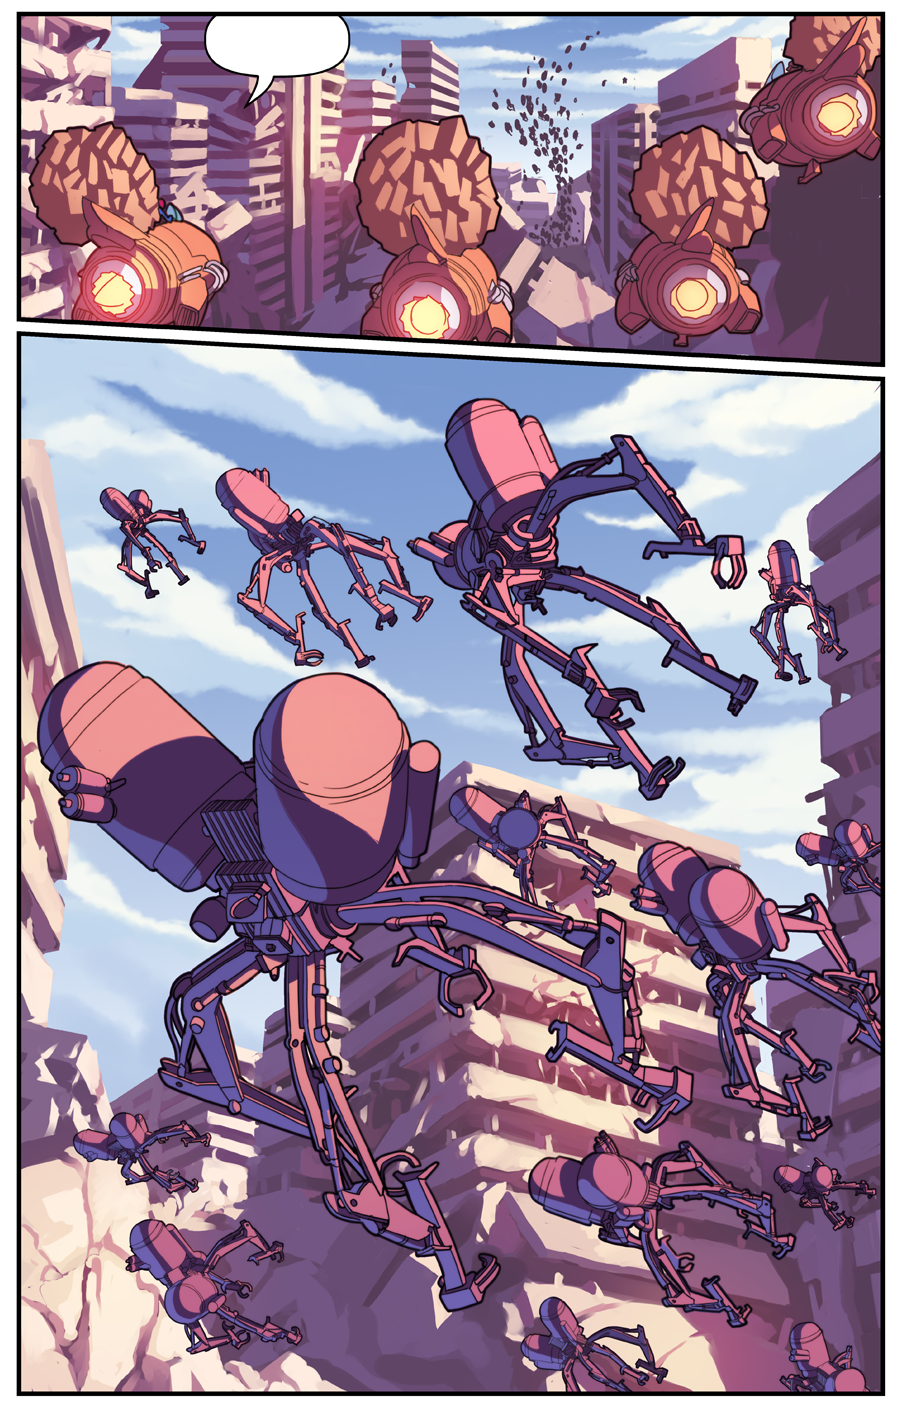 couriers_022.png